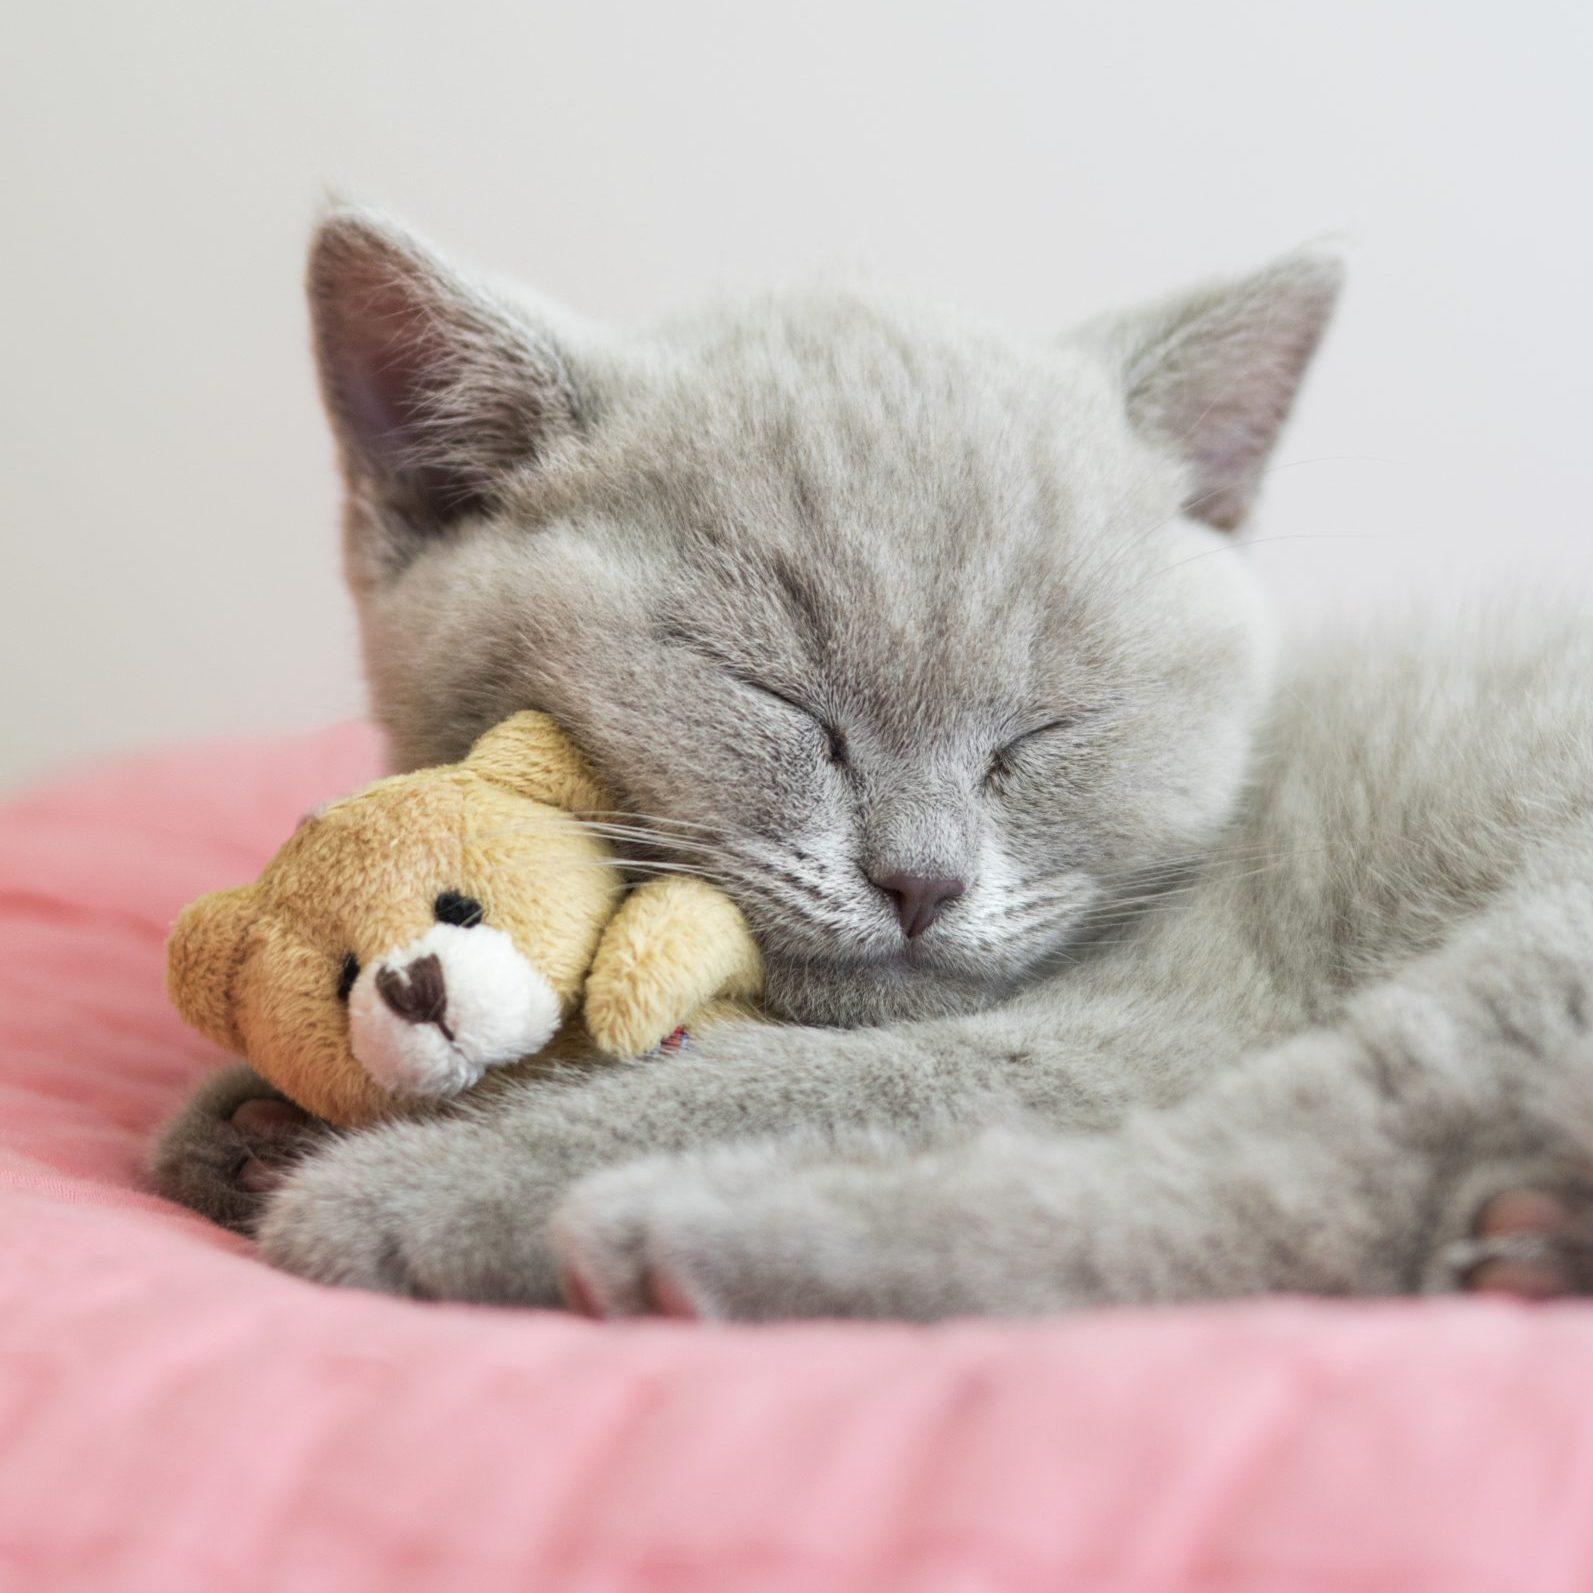 Little British Shorthair cat sleeping on a pink pillow with a teddy bear